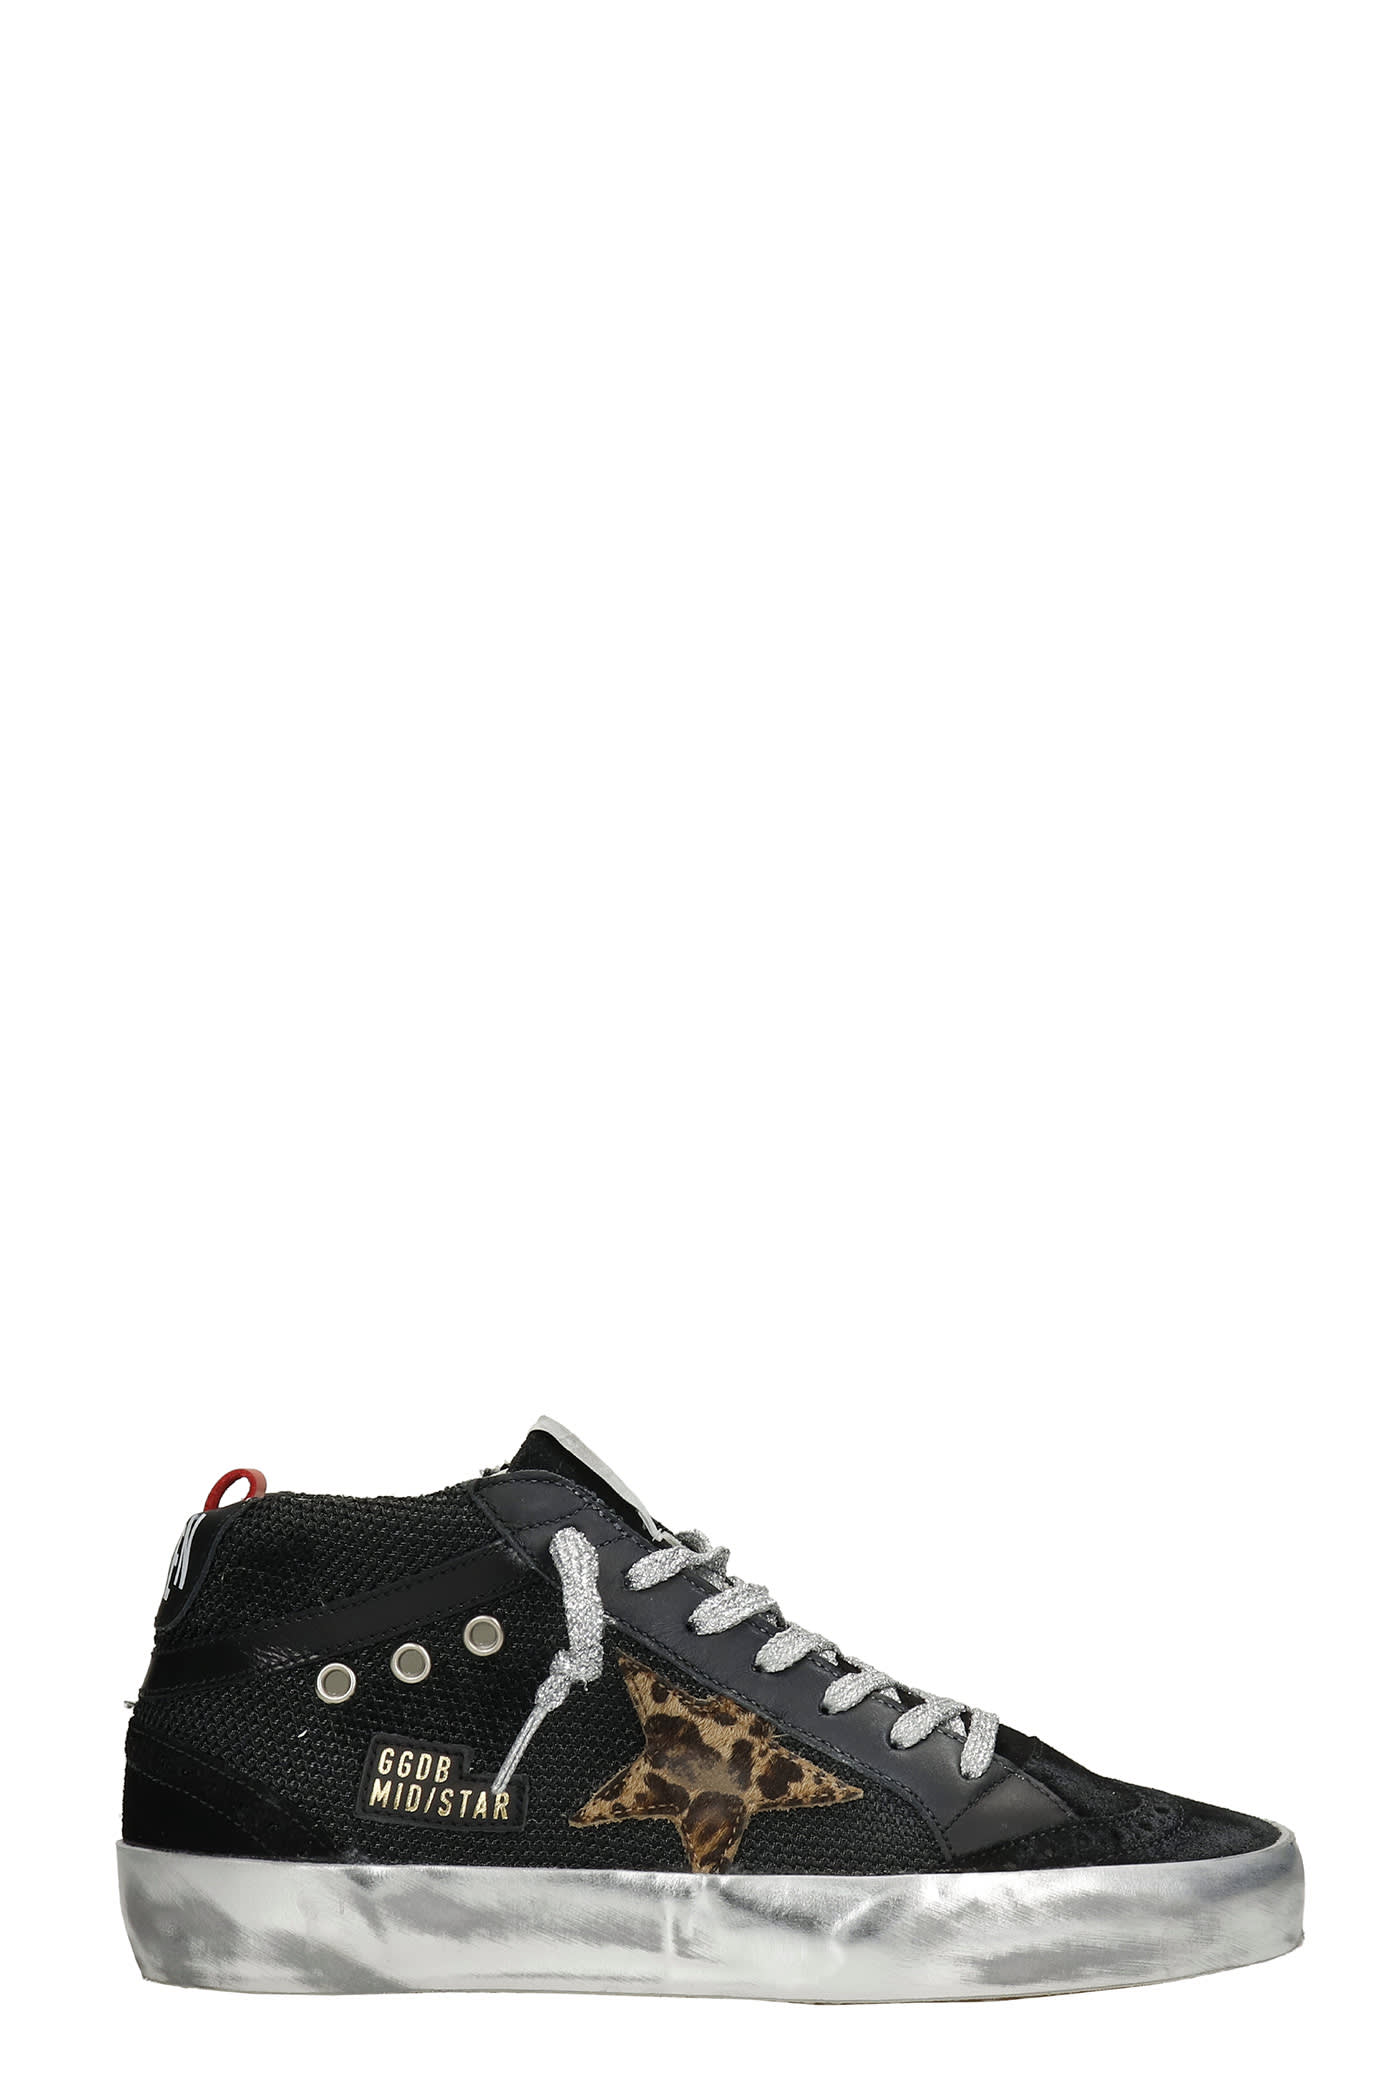 Golden Goose Mid Star Sneakers In Black Leather